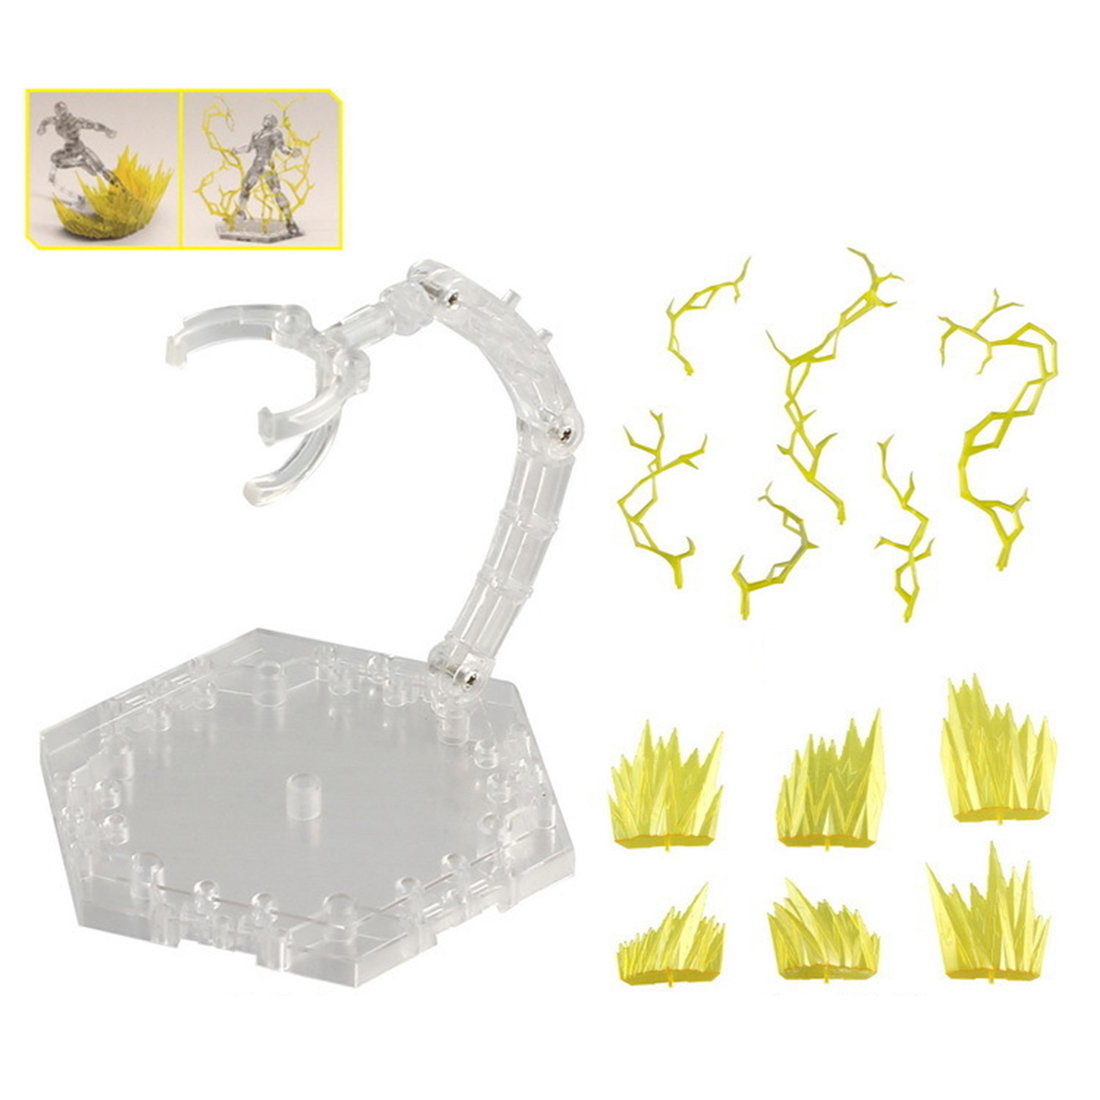 Lightning Aeration Cracking Explosion Model Scene Special Effects Decoration With Bracket For Gundam Model Action & Toy Figures